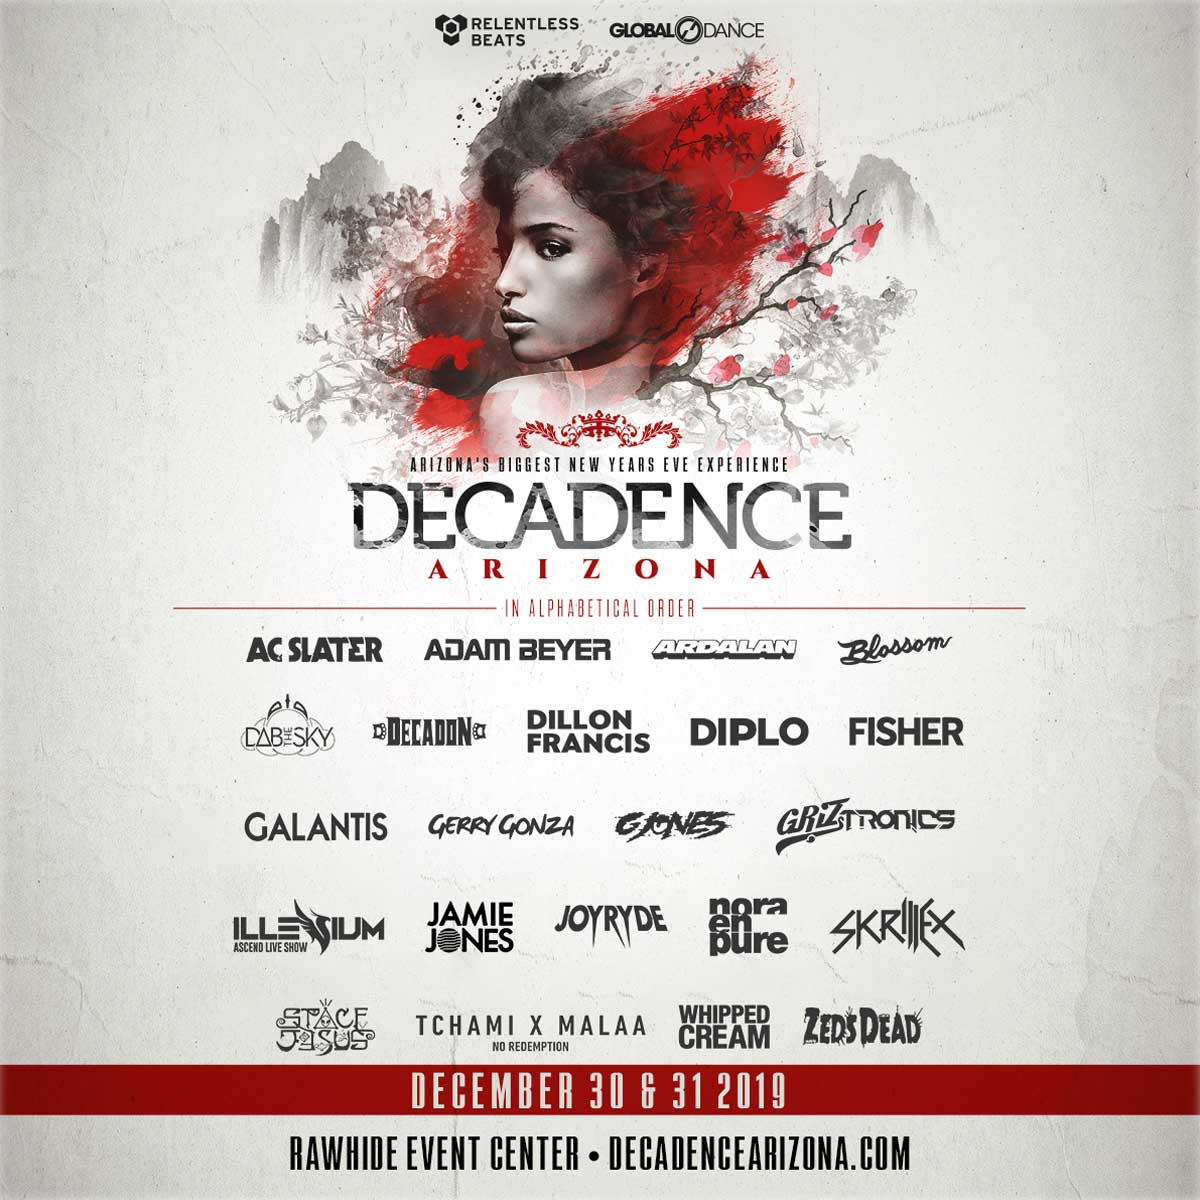 Decadence Arizona Lineup 2019